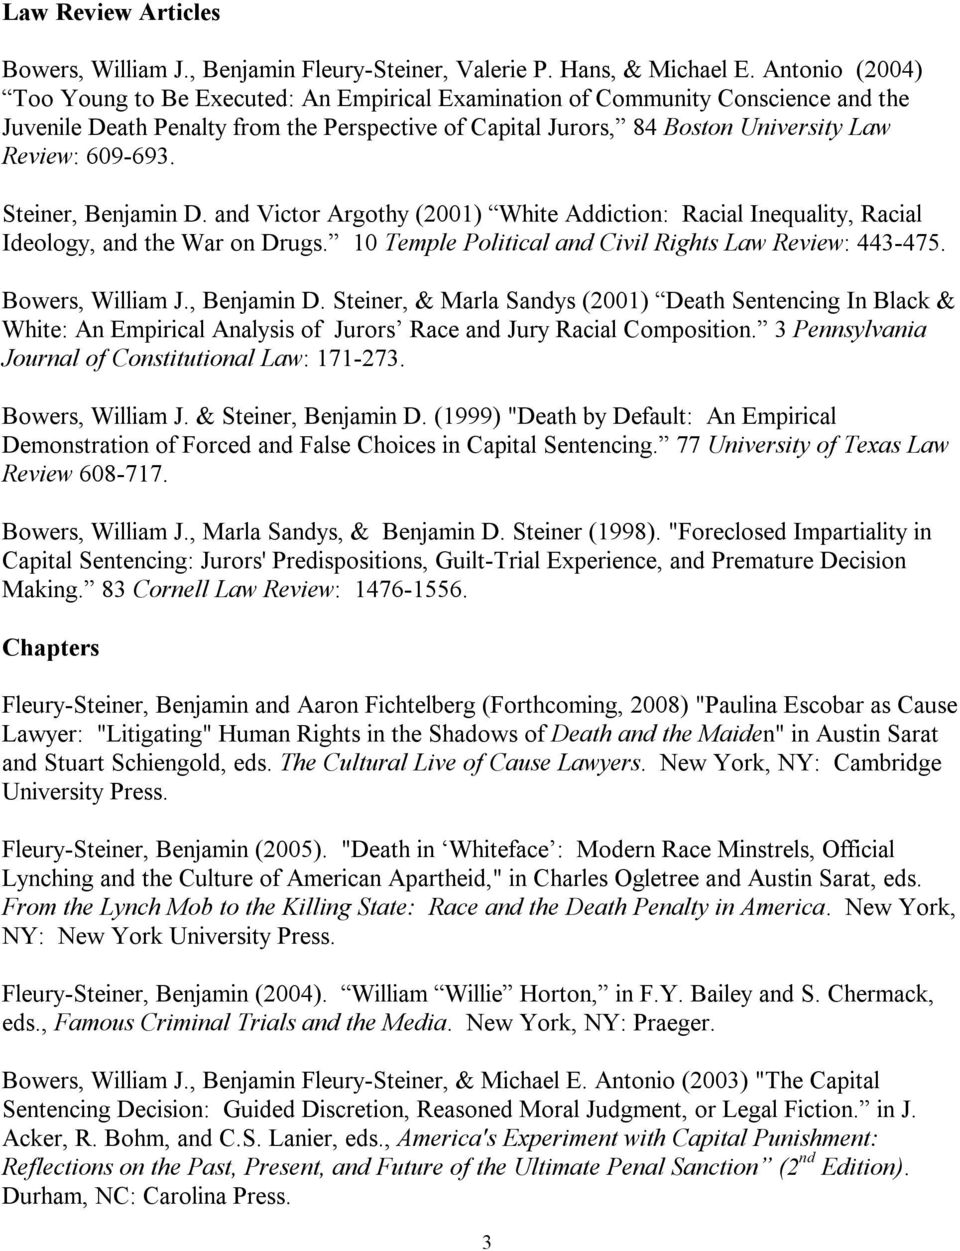 609-693. Steiner, Benjamin D. and Victor Argothy (2001) White Addiction: Racial Inequality, Racial Ideology, and the War on Drugs. 10 Temple Political and Civil Rights Law Review: 443-475.